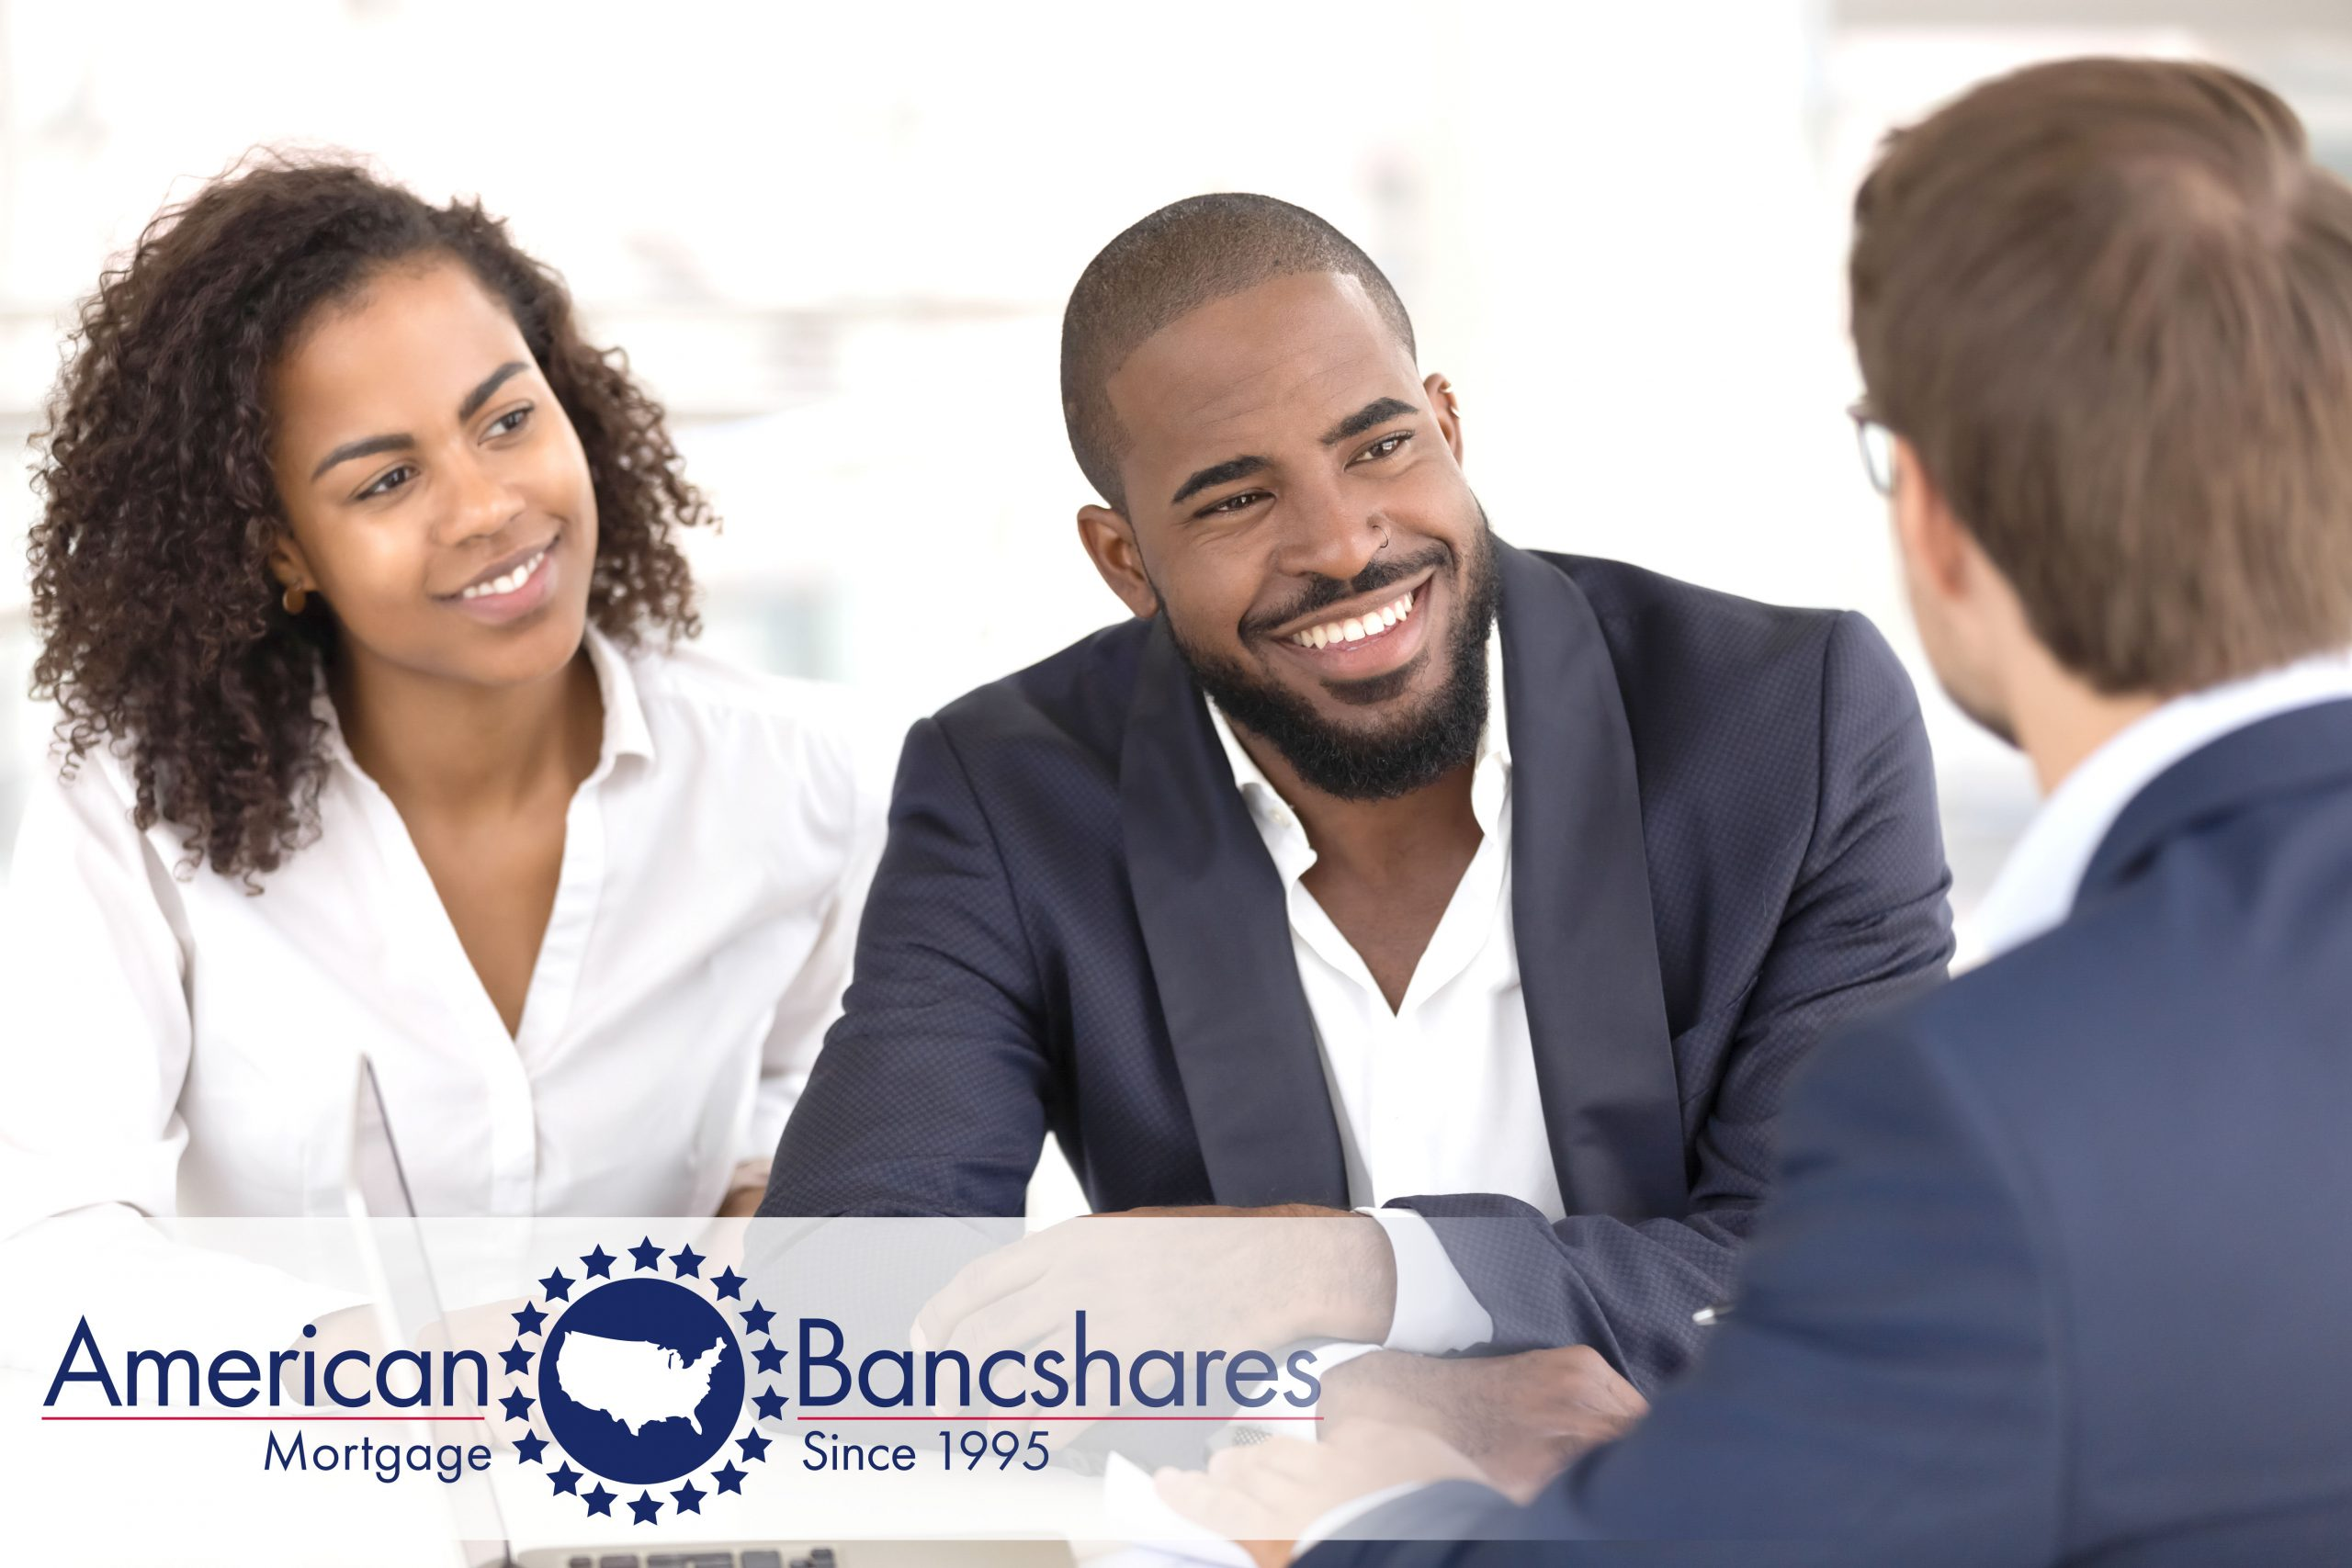 American Bancshares Mortgage Couple Image